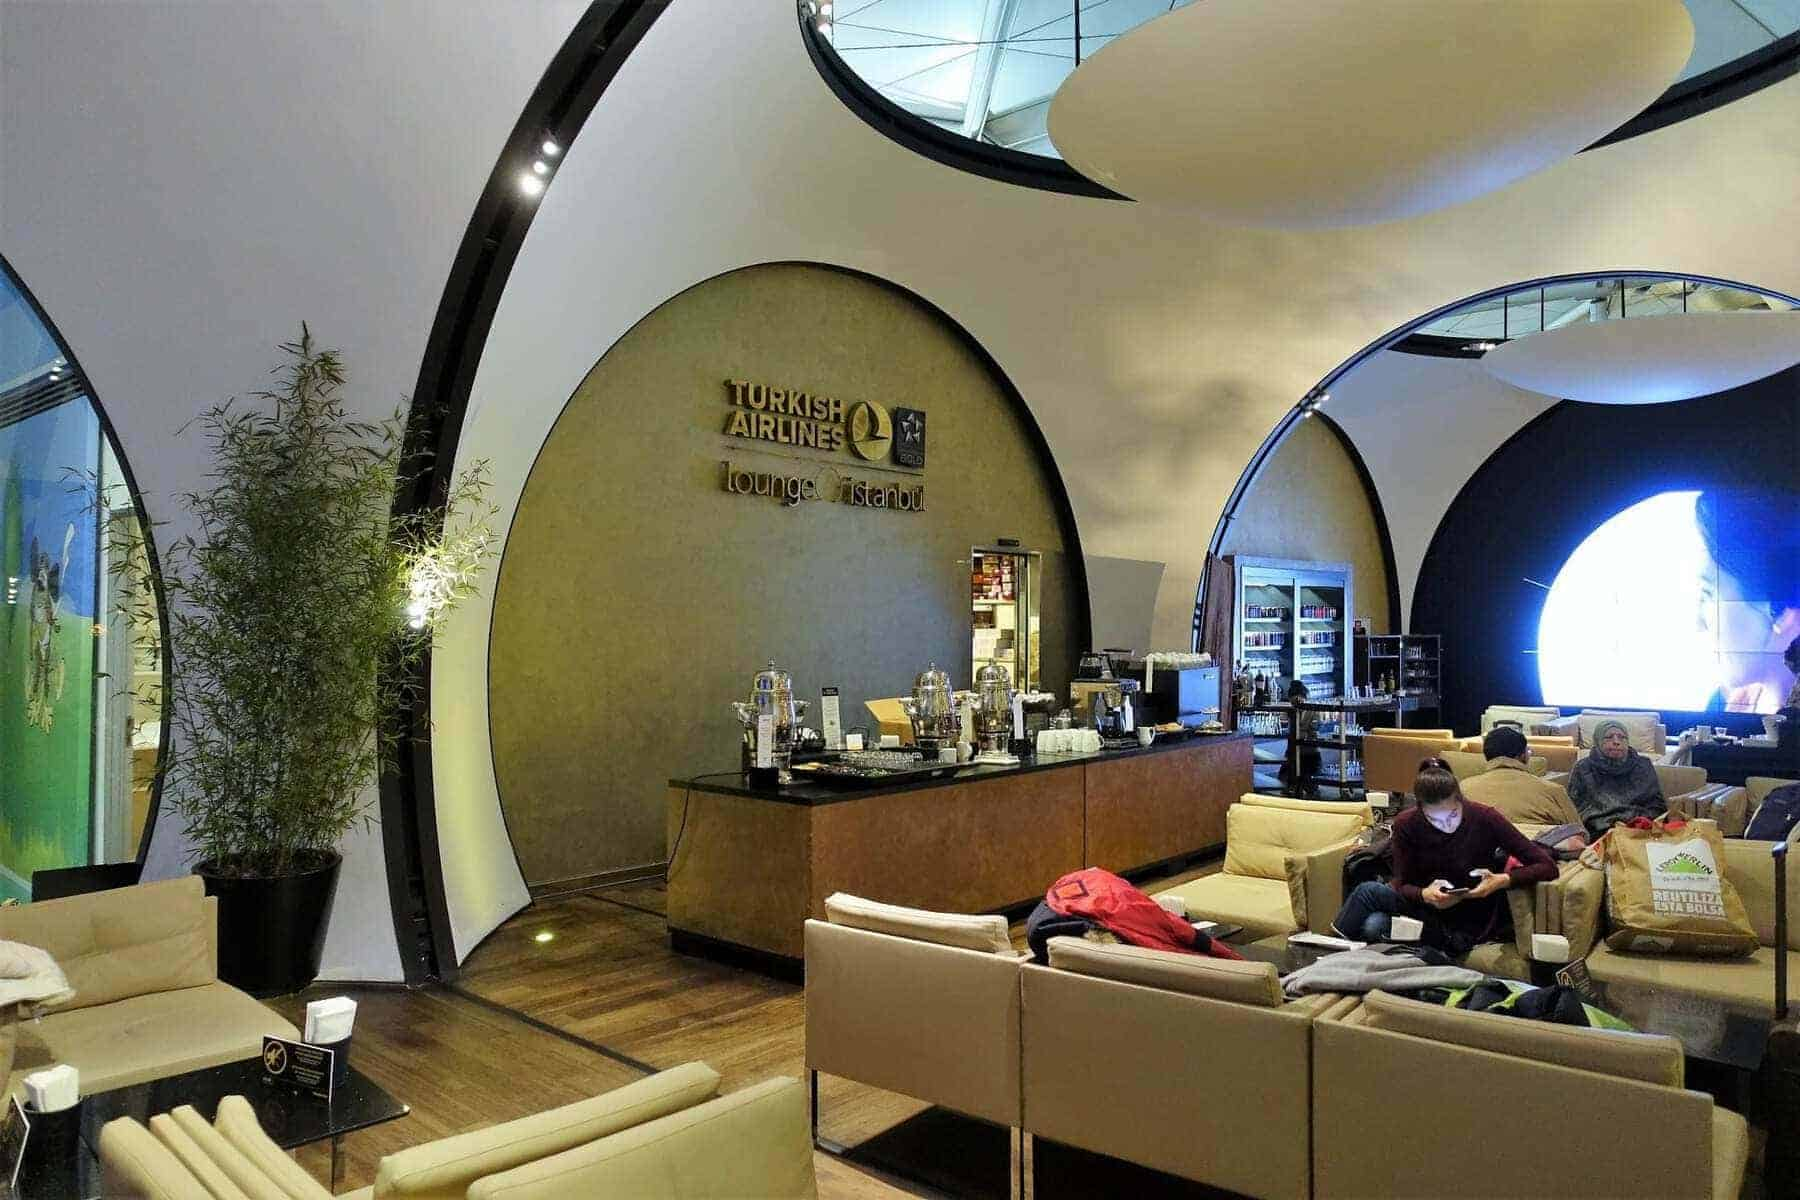 turkish airlines cip lounge 01